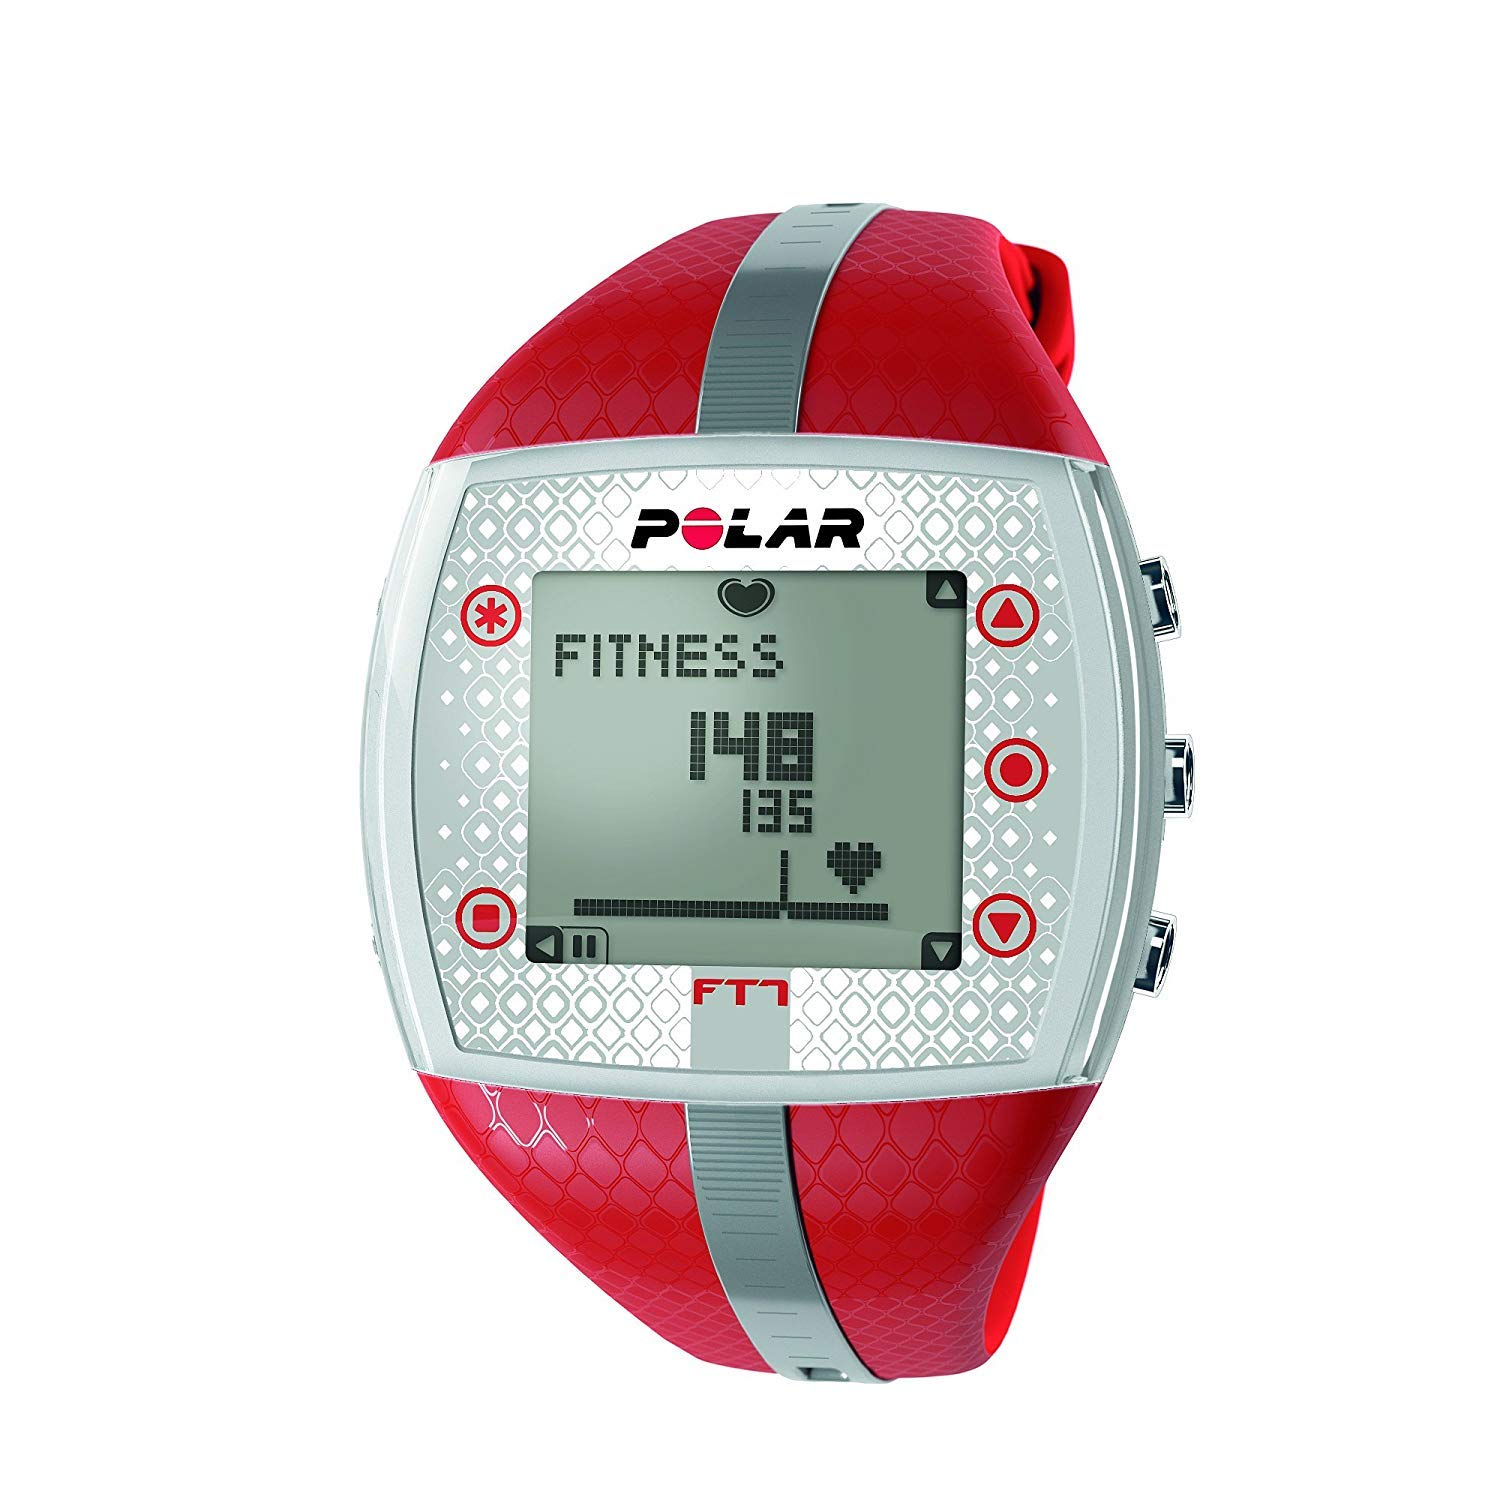 Polar FT7 Heart Rate Monitor (Renewed) (Red/Silver) by Polar